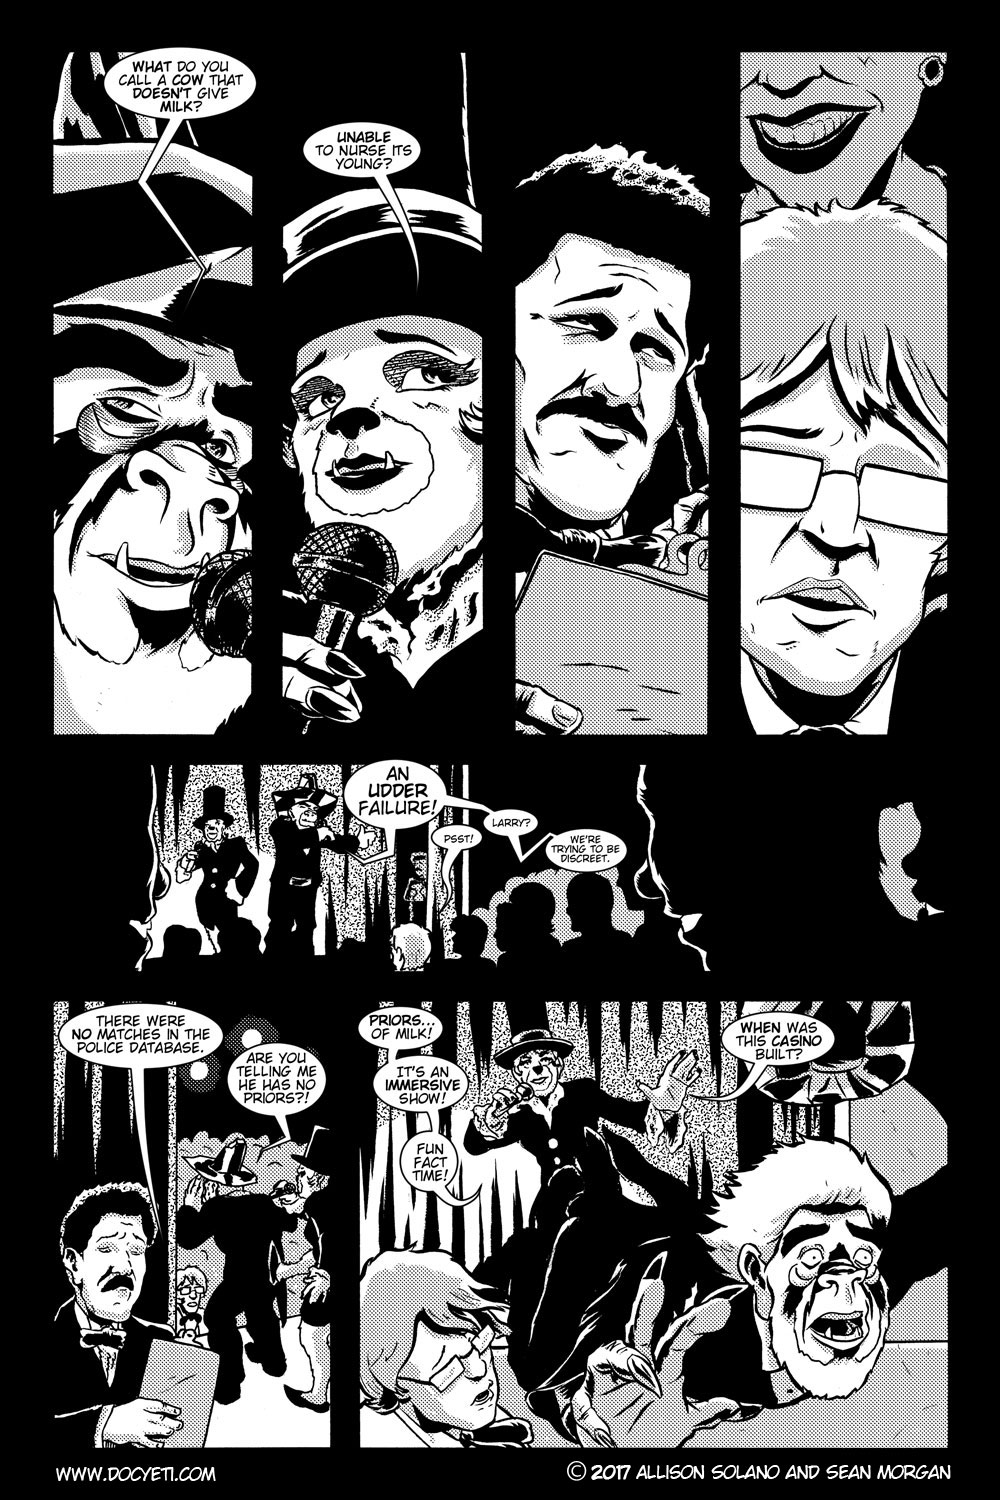 This Yeti for Hire! or the Yeti with the Lace Kerchief! Issue 3 pg.08